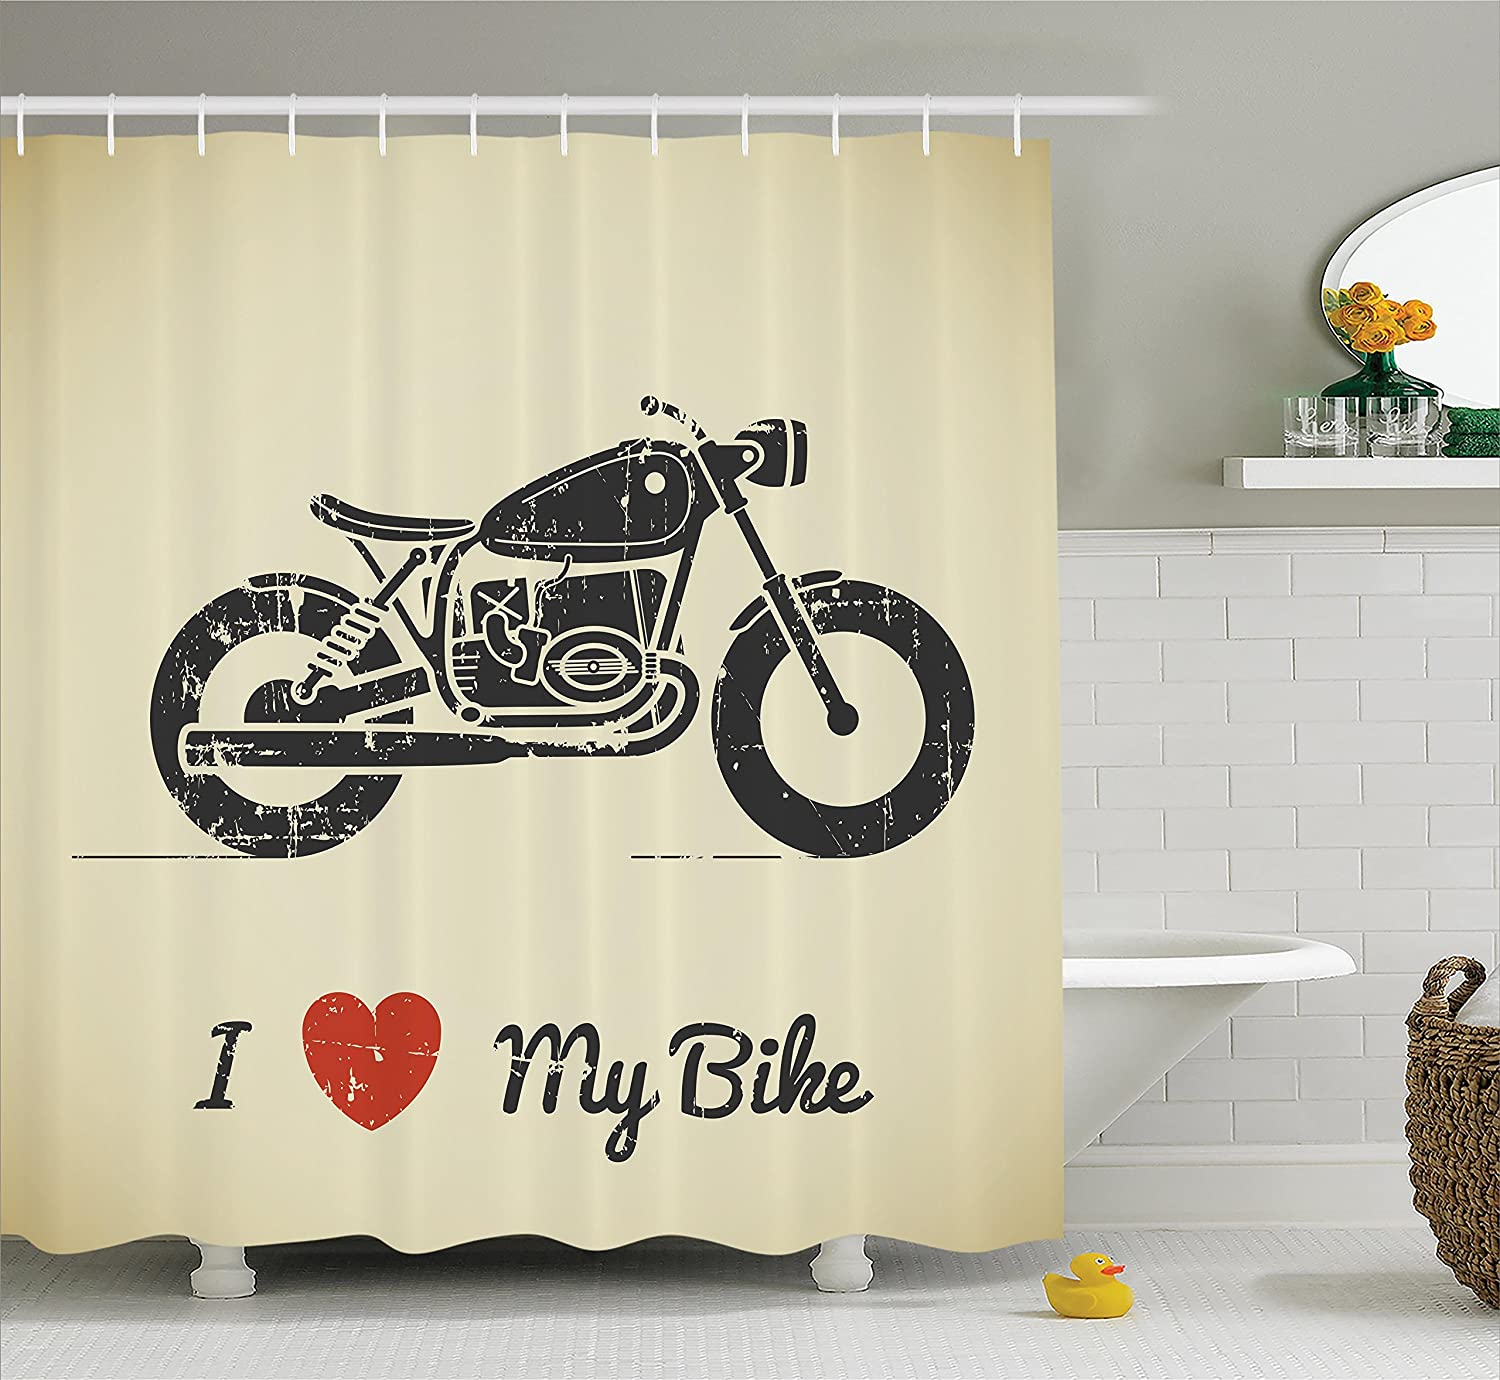 Ambesonne Manly Decor Shower Curtain Set, Vintage Grunge Flat Looking Motorcycle and I Love My Bike Text Silhouette Art, Bathroom Accessories, 69W X 70L Inches